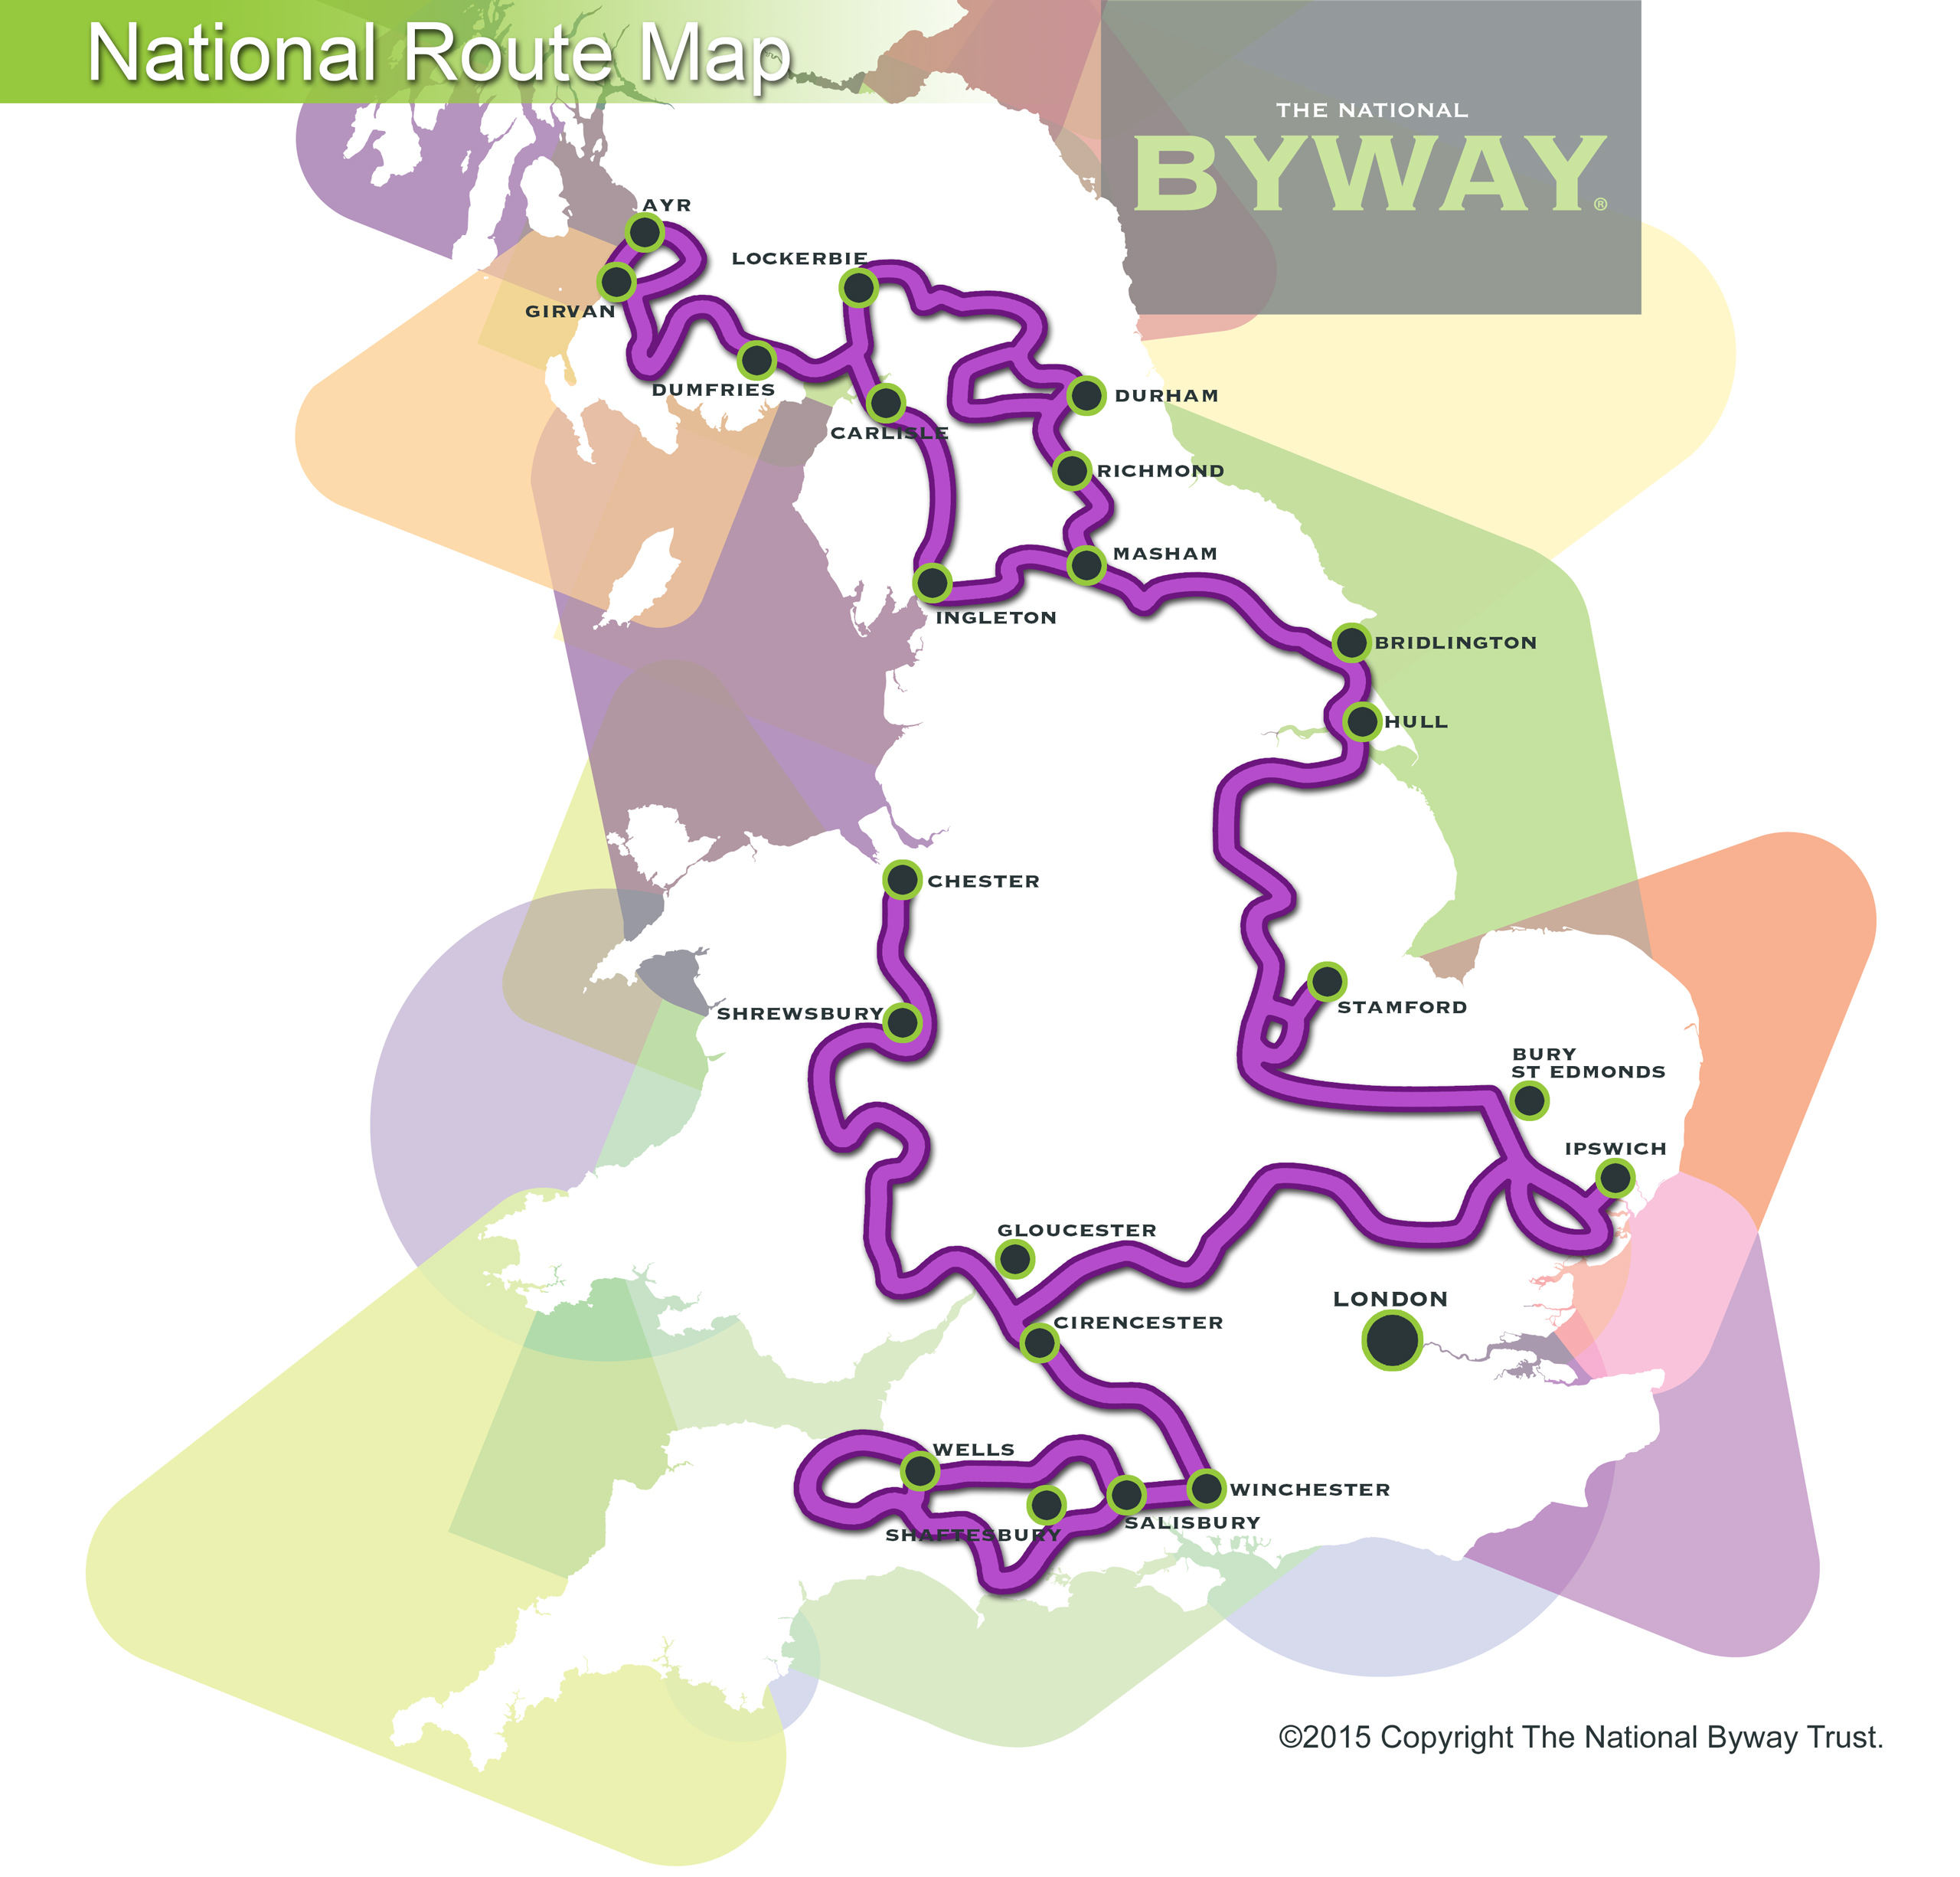 The National Byway® National Route Map